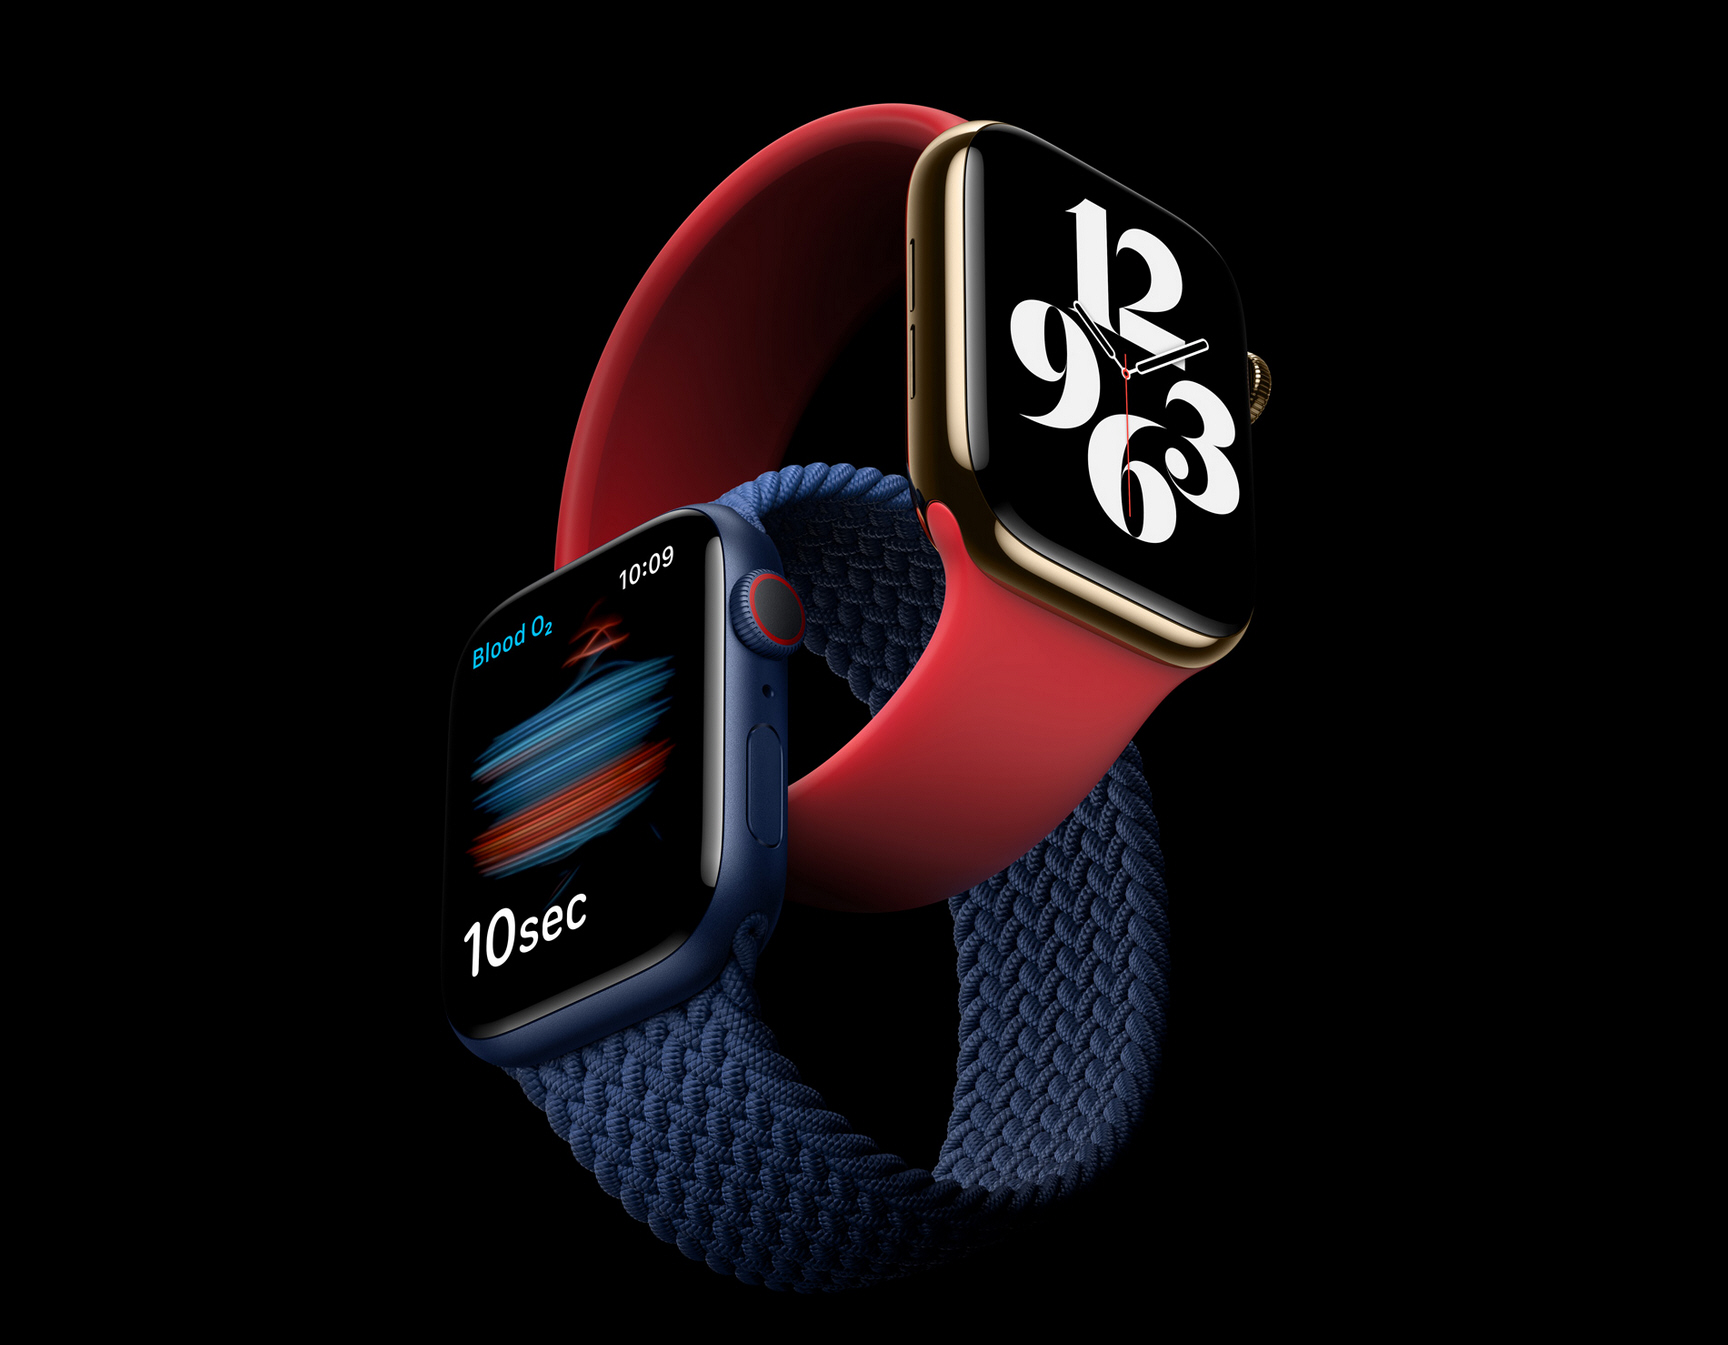 Apple is launching Watch Series 6 with a new Blood Oxygen sensor, plus more affordable Watch SE.